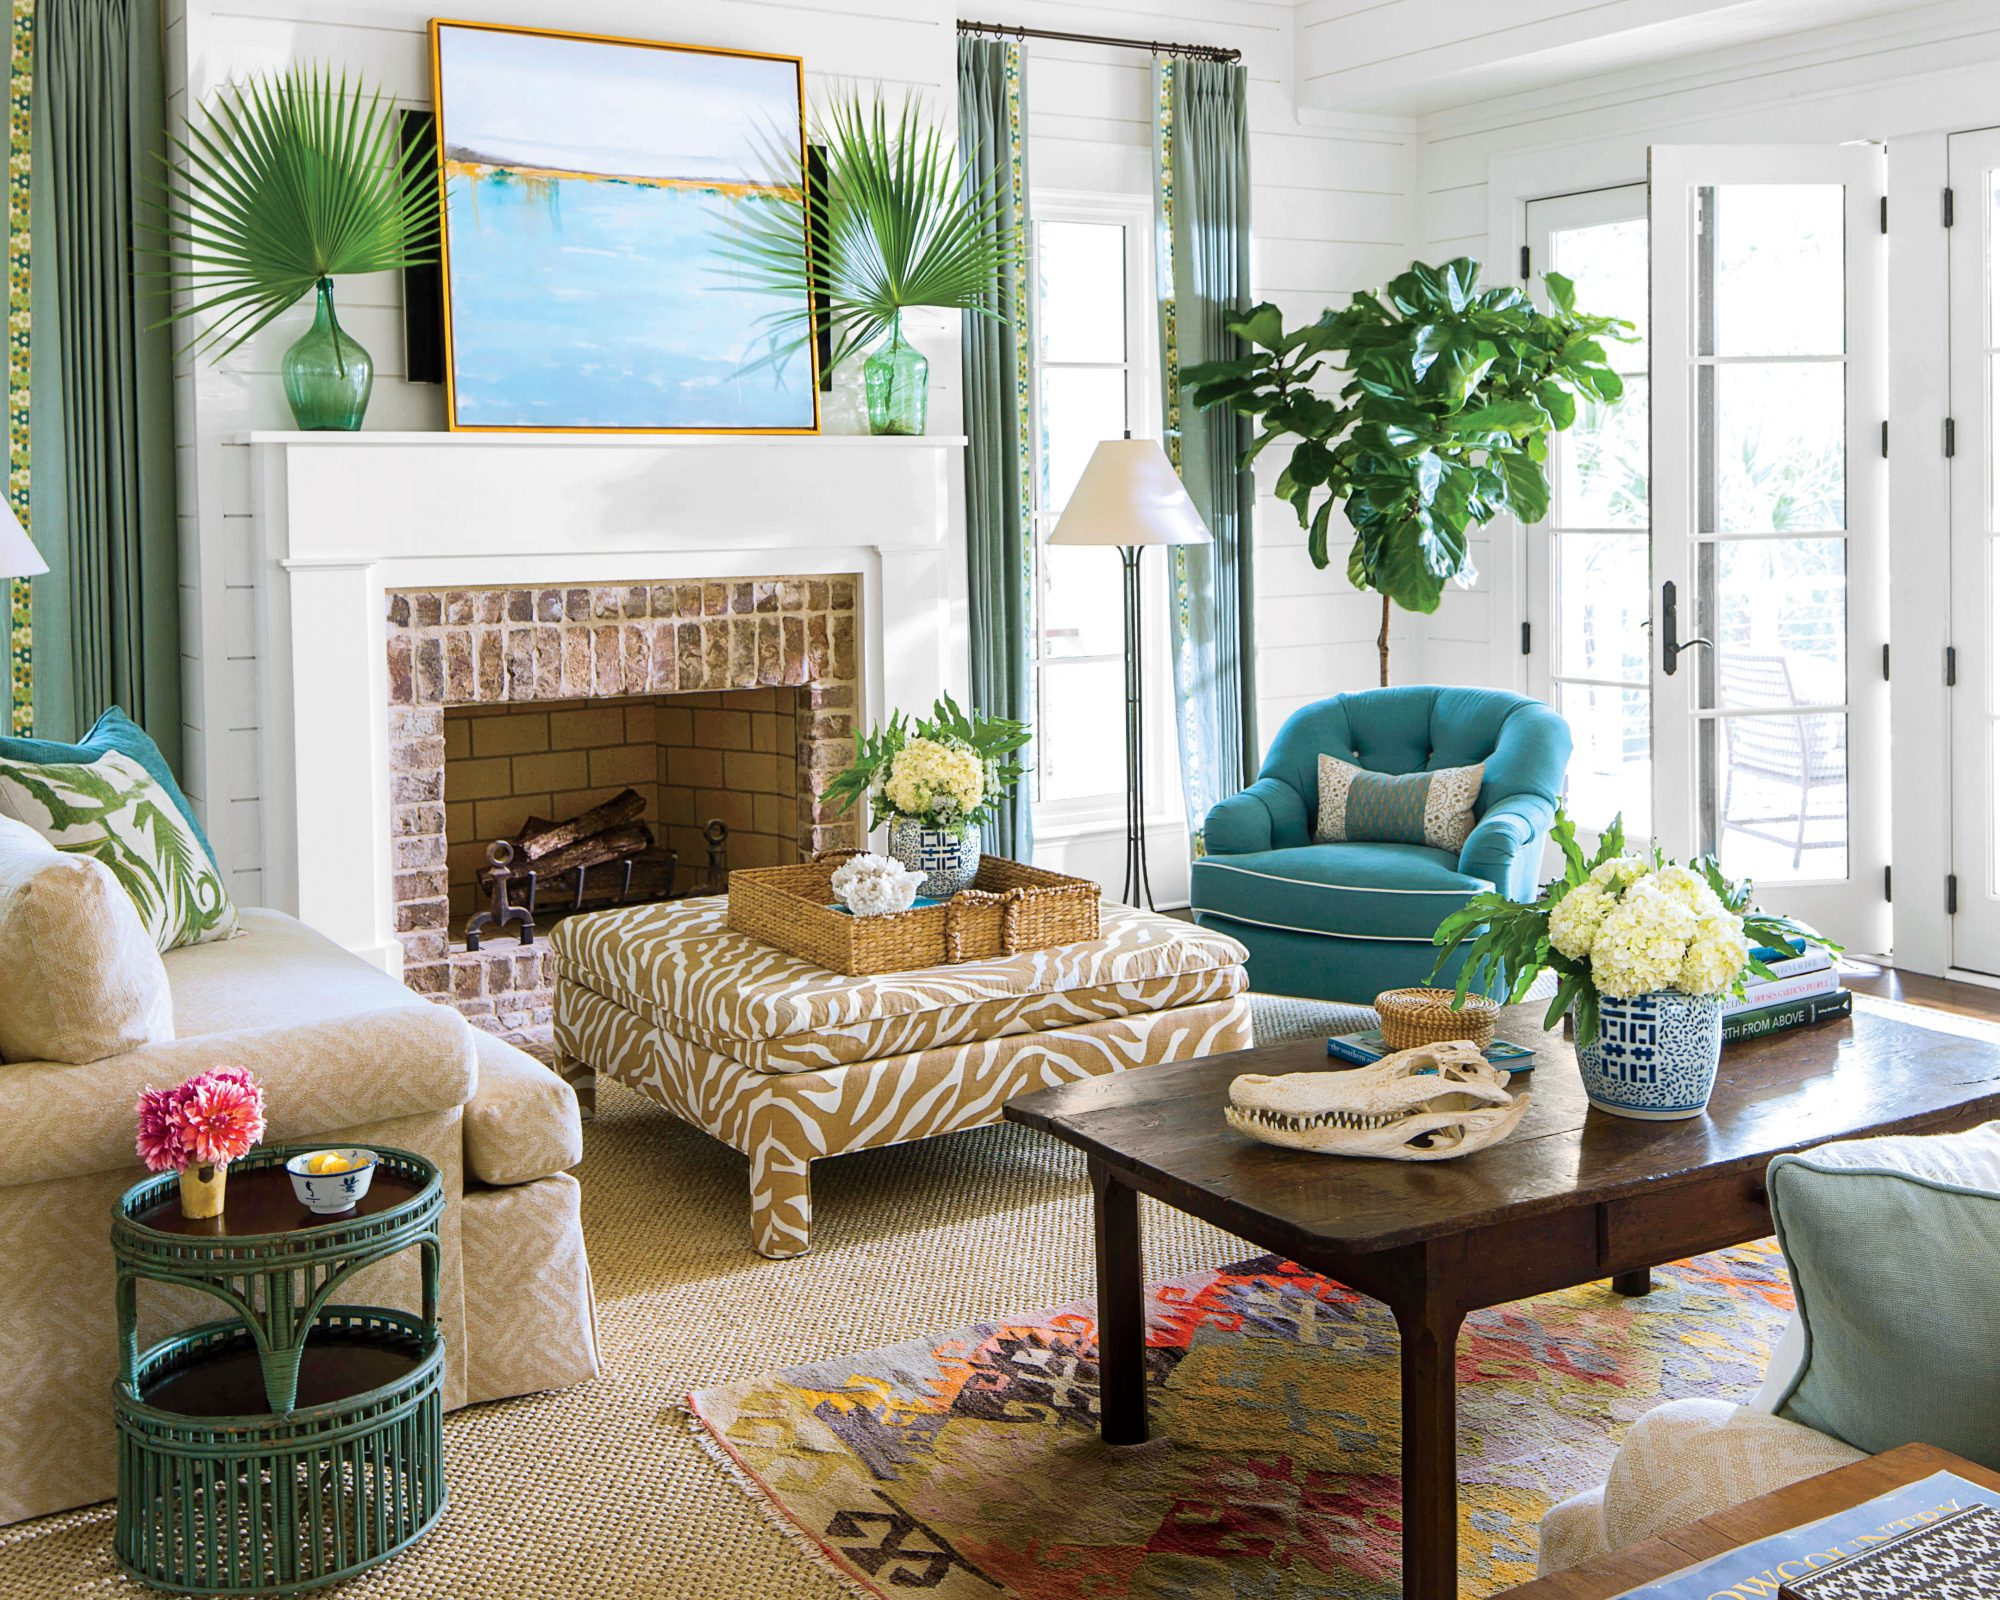 Decorated Living Room Ideas decorated living room ideas outstanding best 25 decorations on pinterest console 2 Coastal Lowcountry Living Room